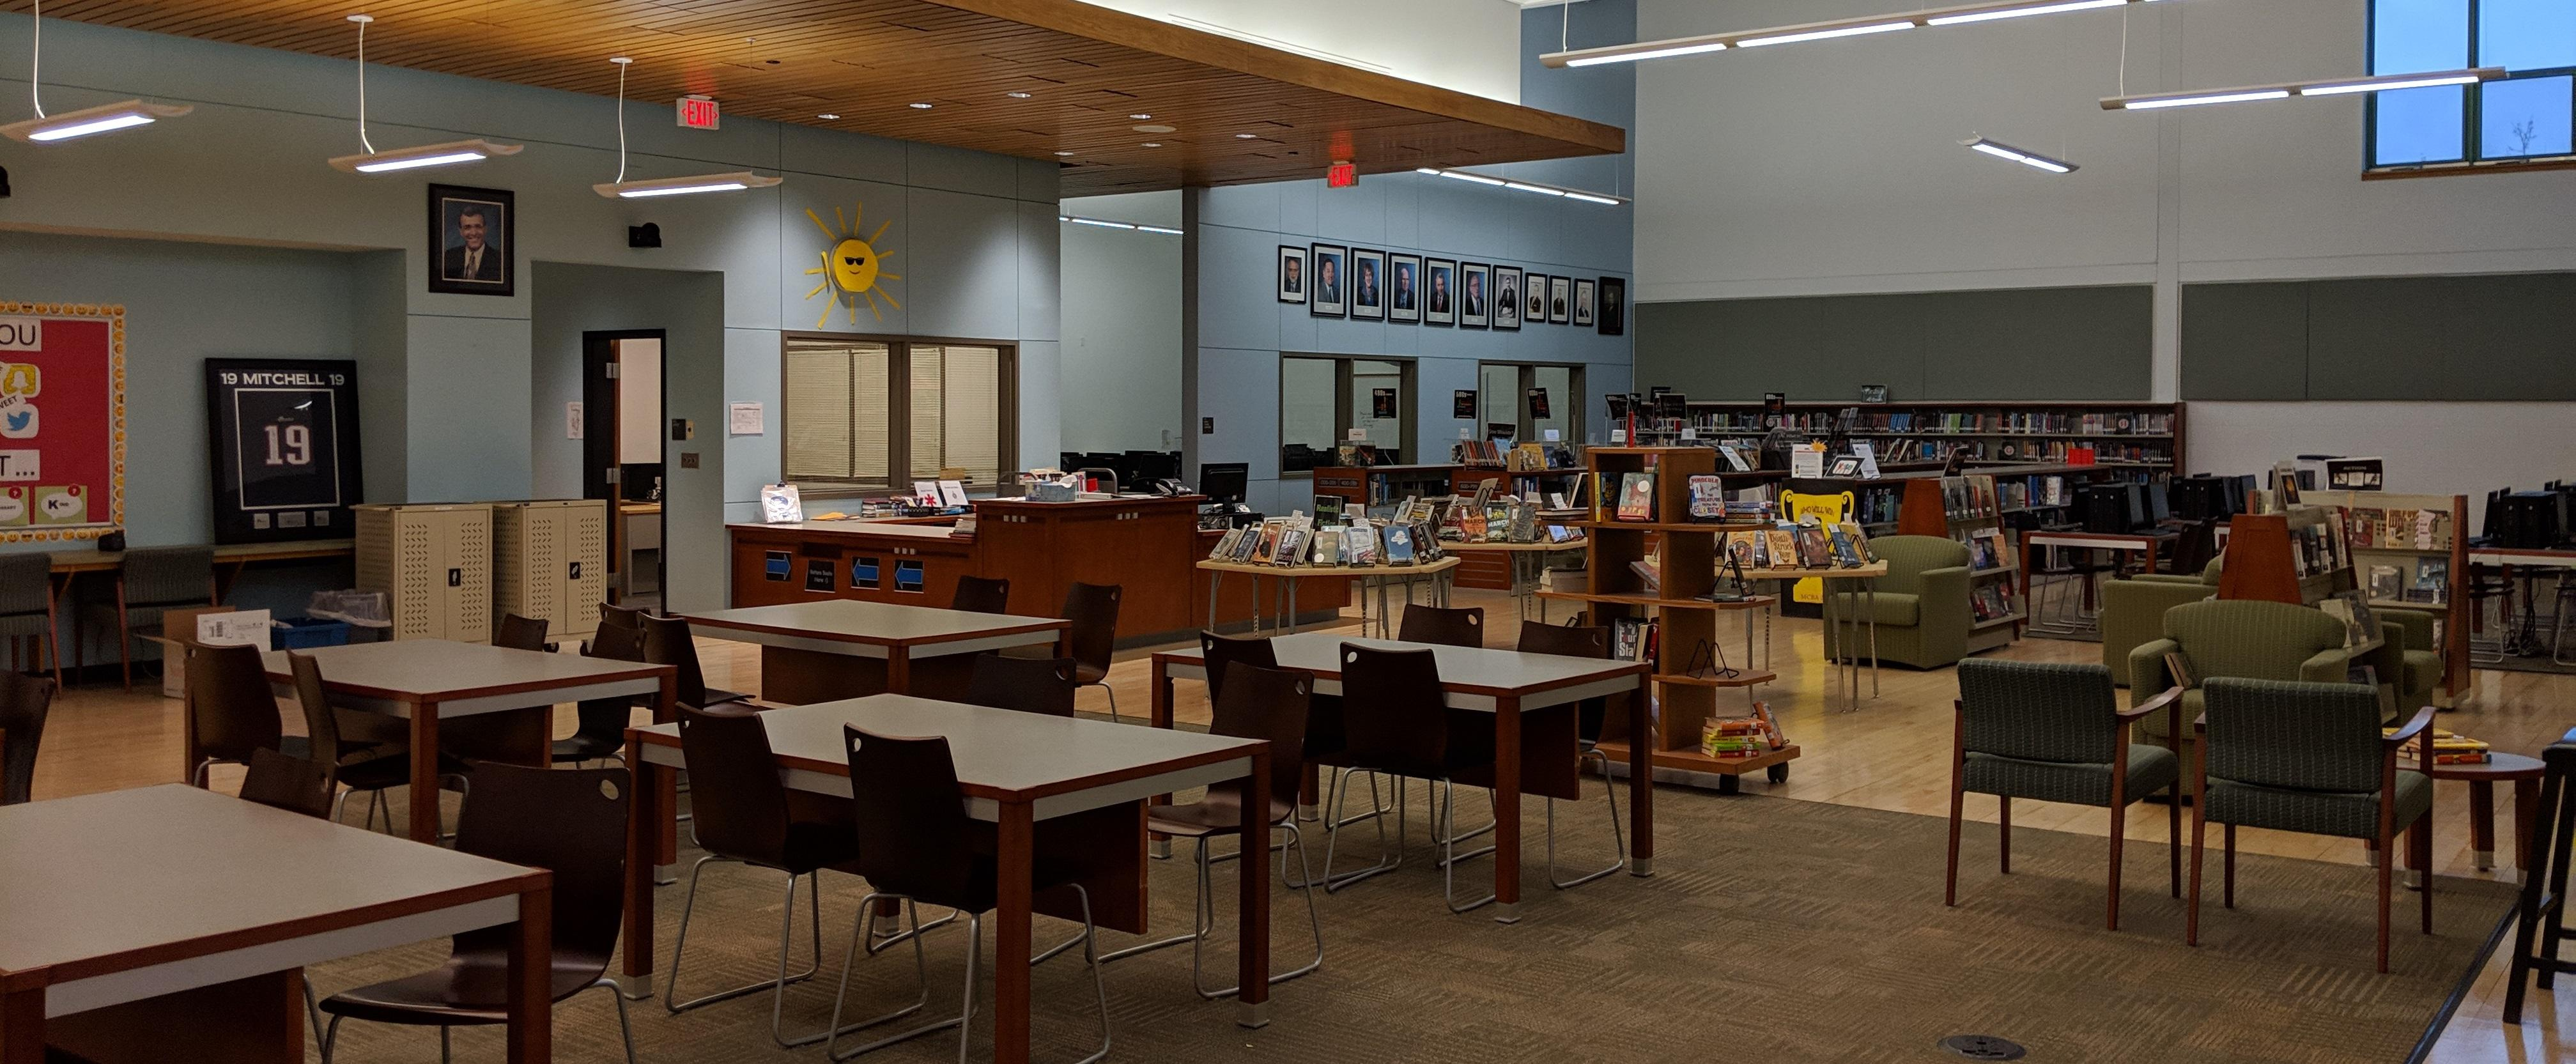 Image of the CMS Library.